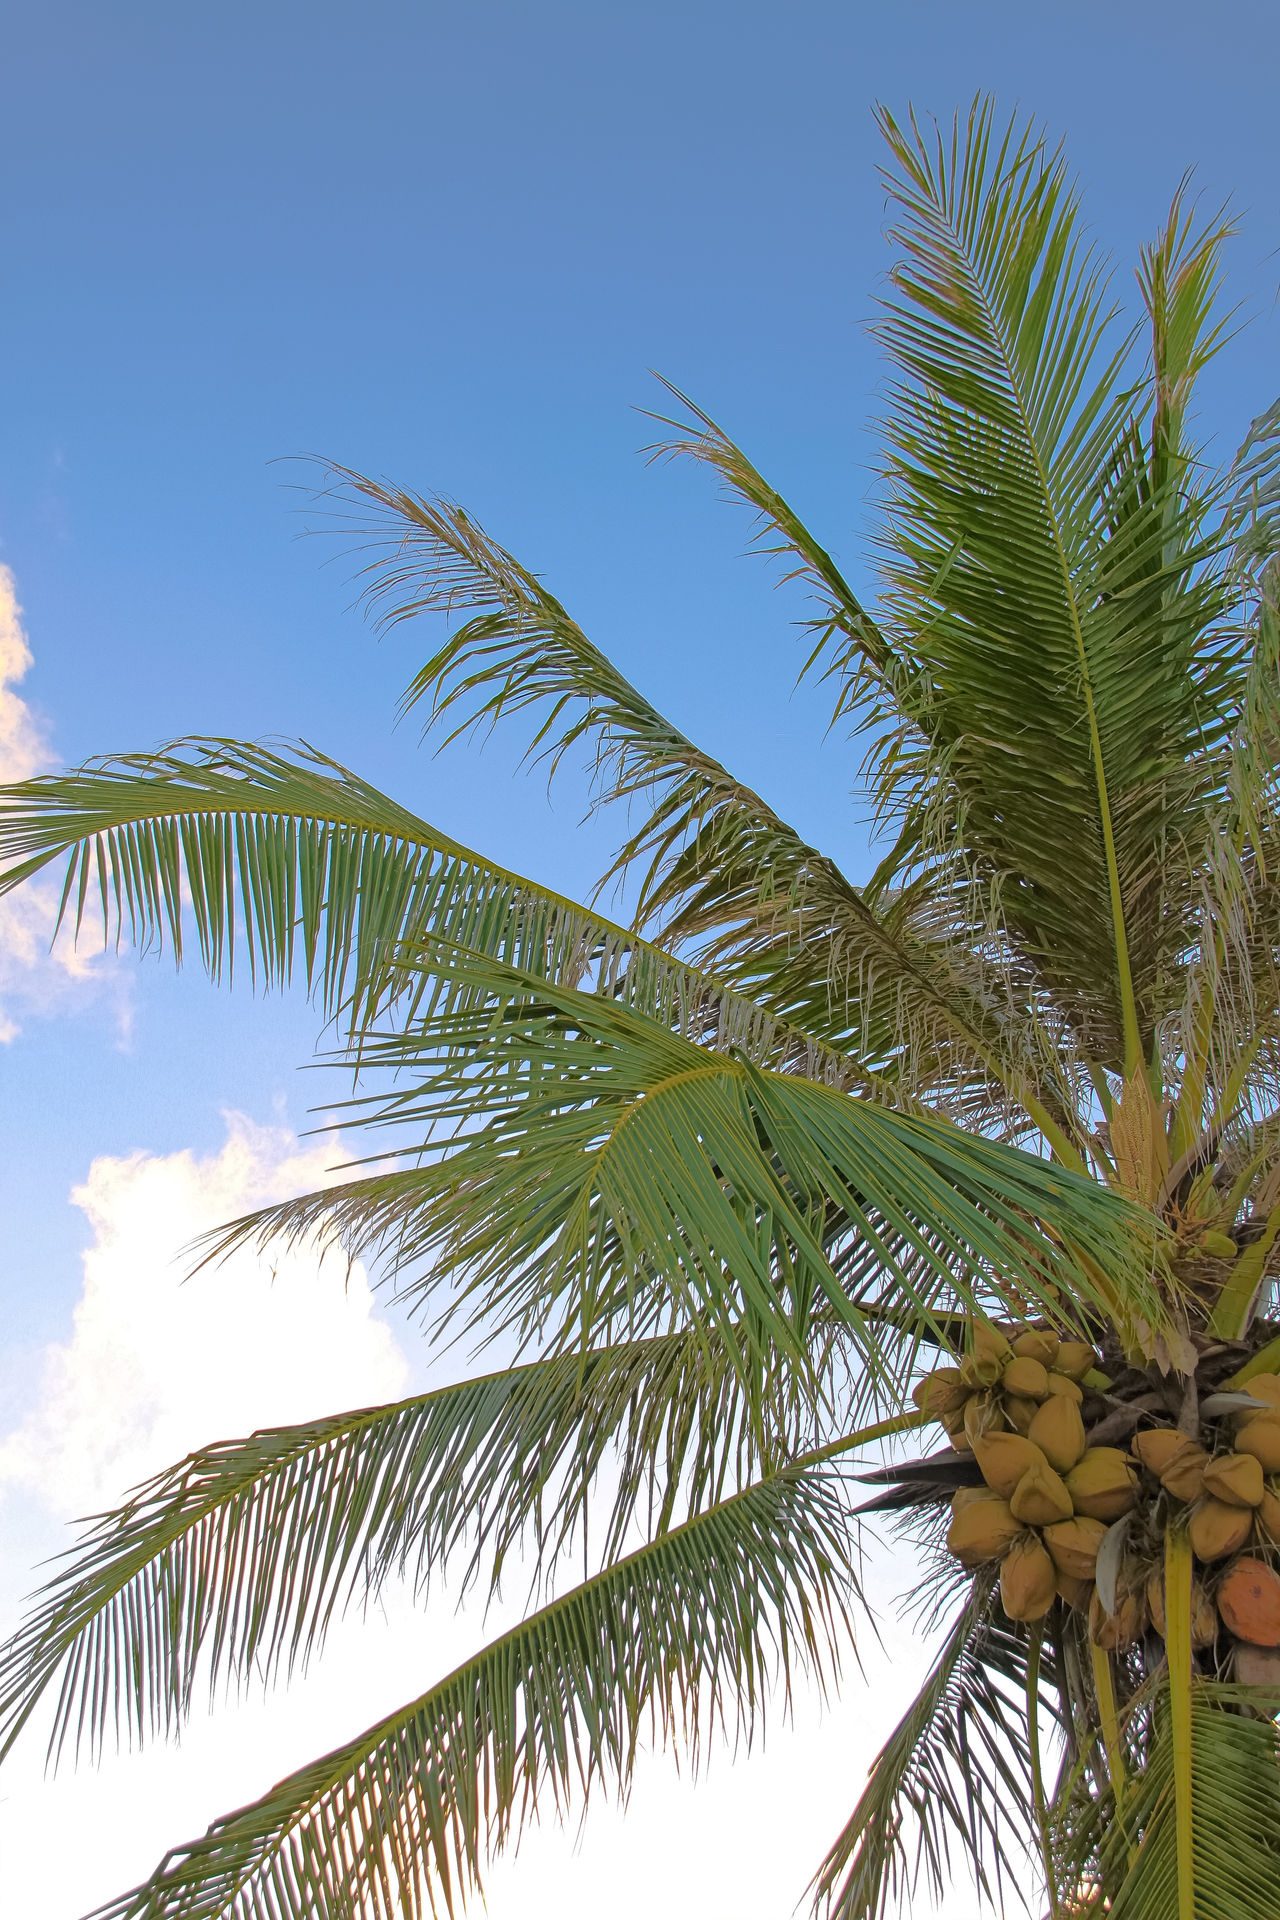 An image of nice palm trees in the blue sunny sky 43 Golden Moments America Beauty In Nature Blue Sky Day Getty Getty Images Getty X EyeEm Green Color Guam Nature No People Outdoors Palm Tree Sky Stockphoto Stockphotography The OO Mission Tree USA